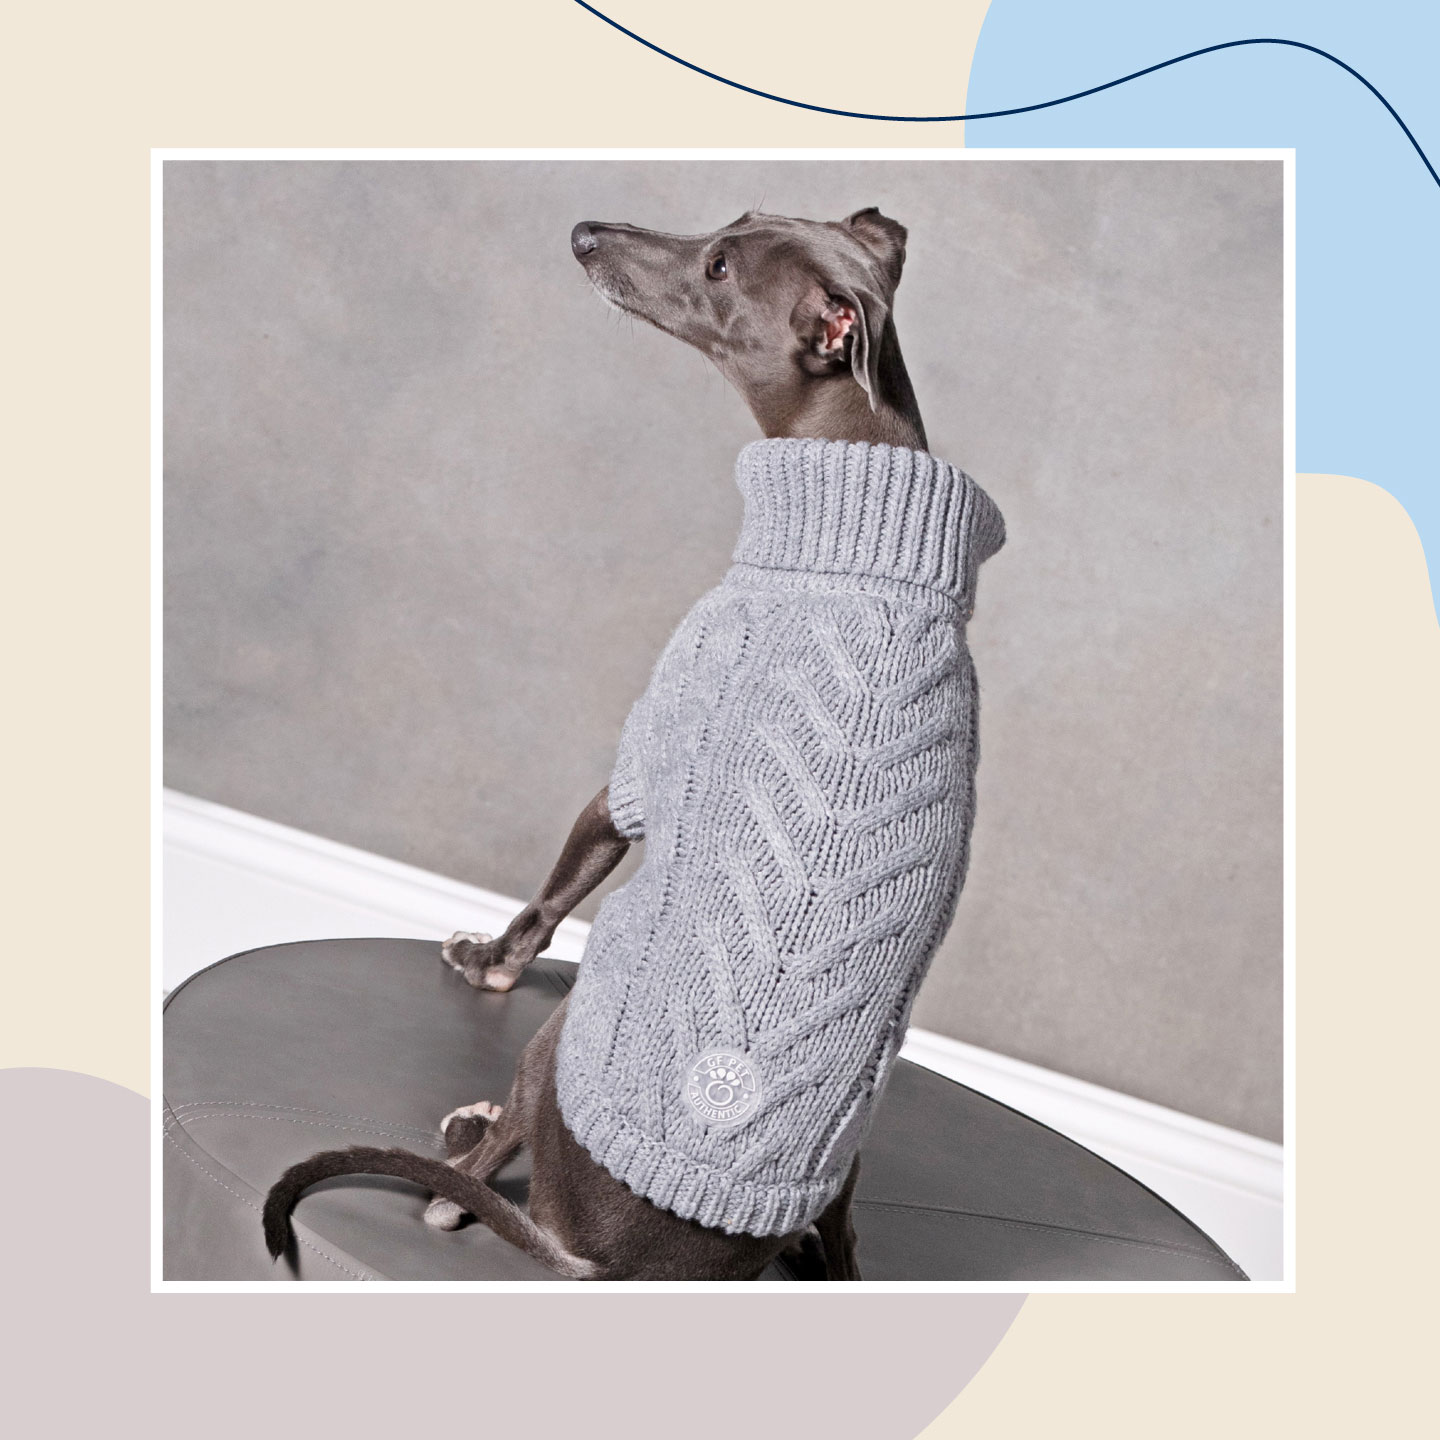 Winter Dog Clothes to Keep Your Fur Fam Toasty and On-Trend This Season